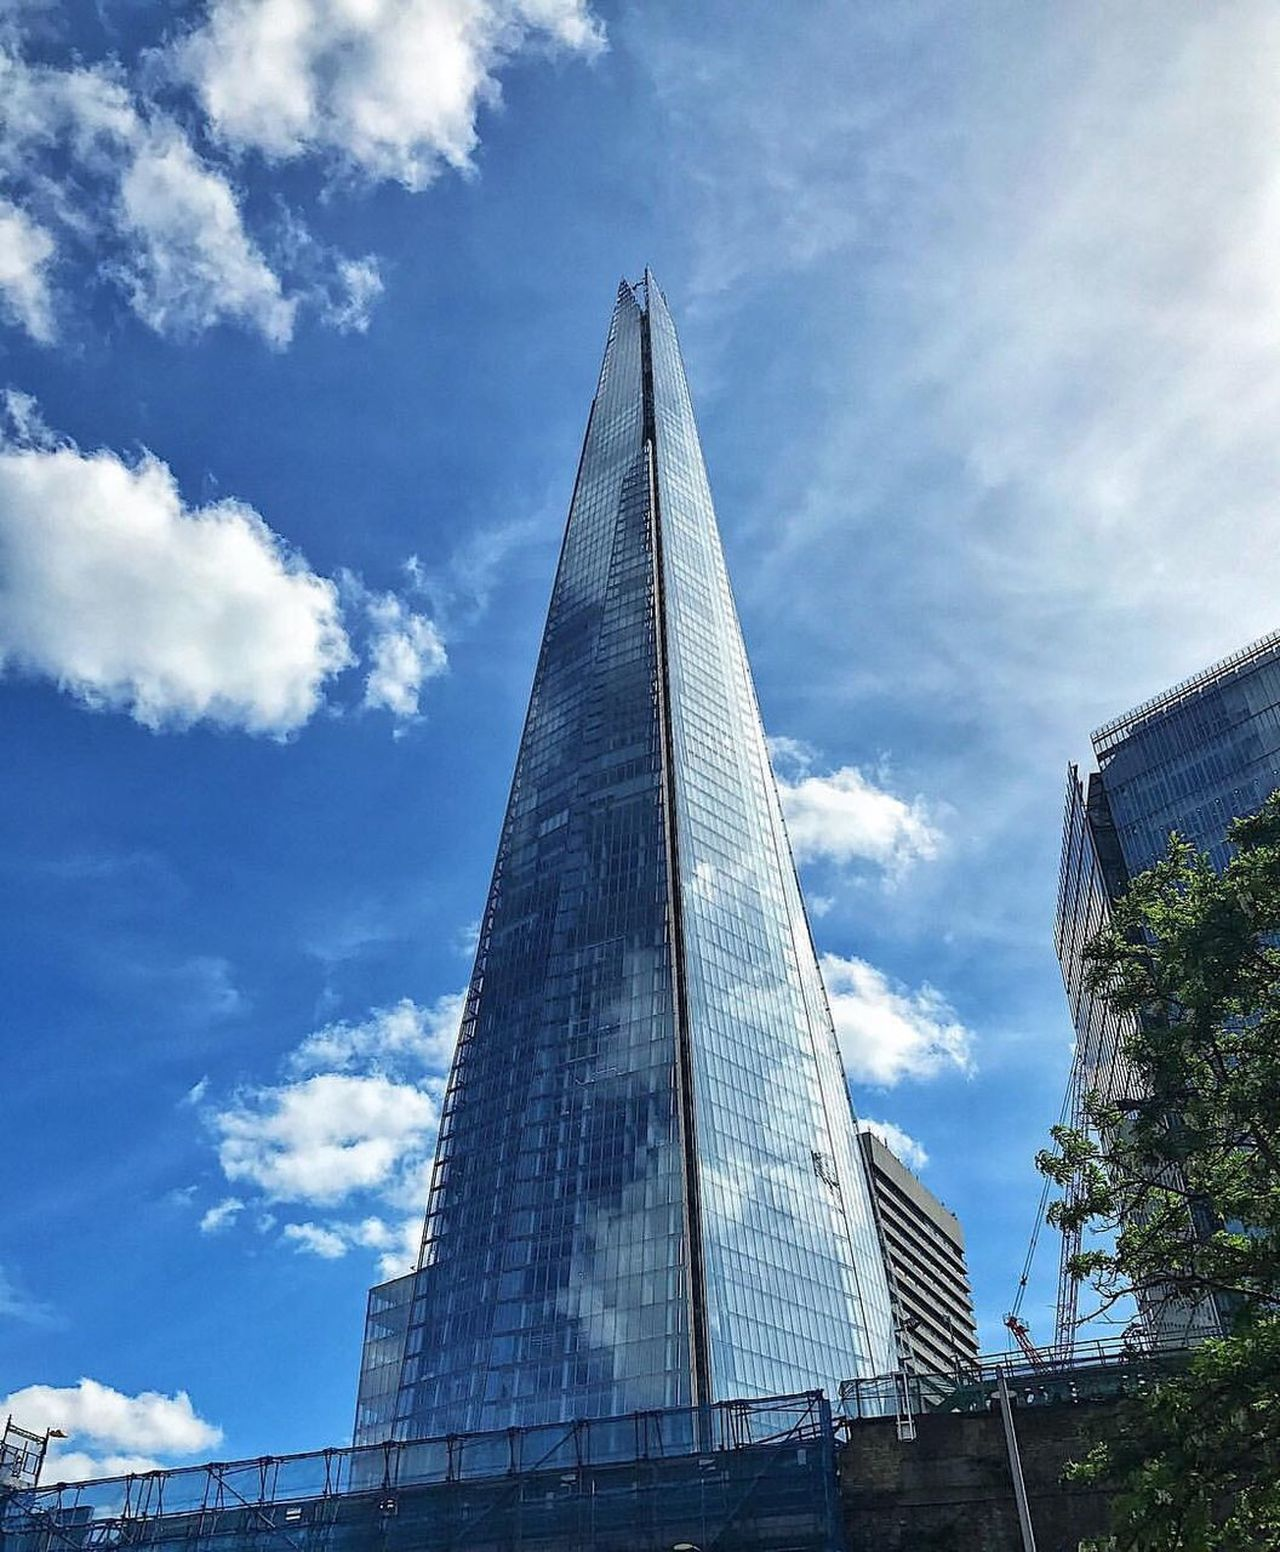 Architecture Sky Built Structure Cloud - Sky Building Exterior Modern Low Angle View Day Skyscraper Travel City Travel Destinations Pyramid No People